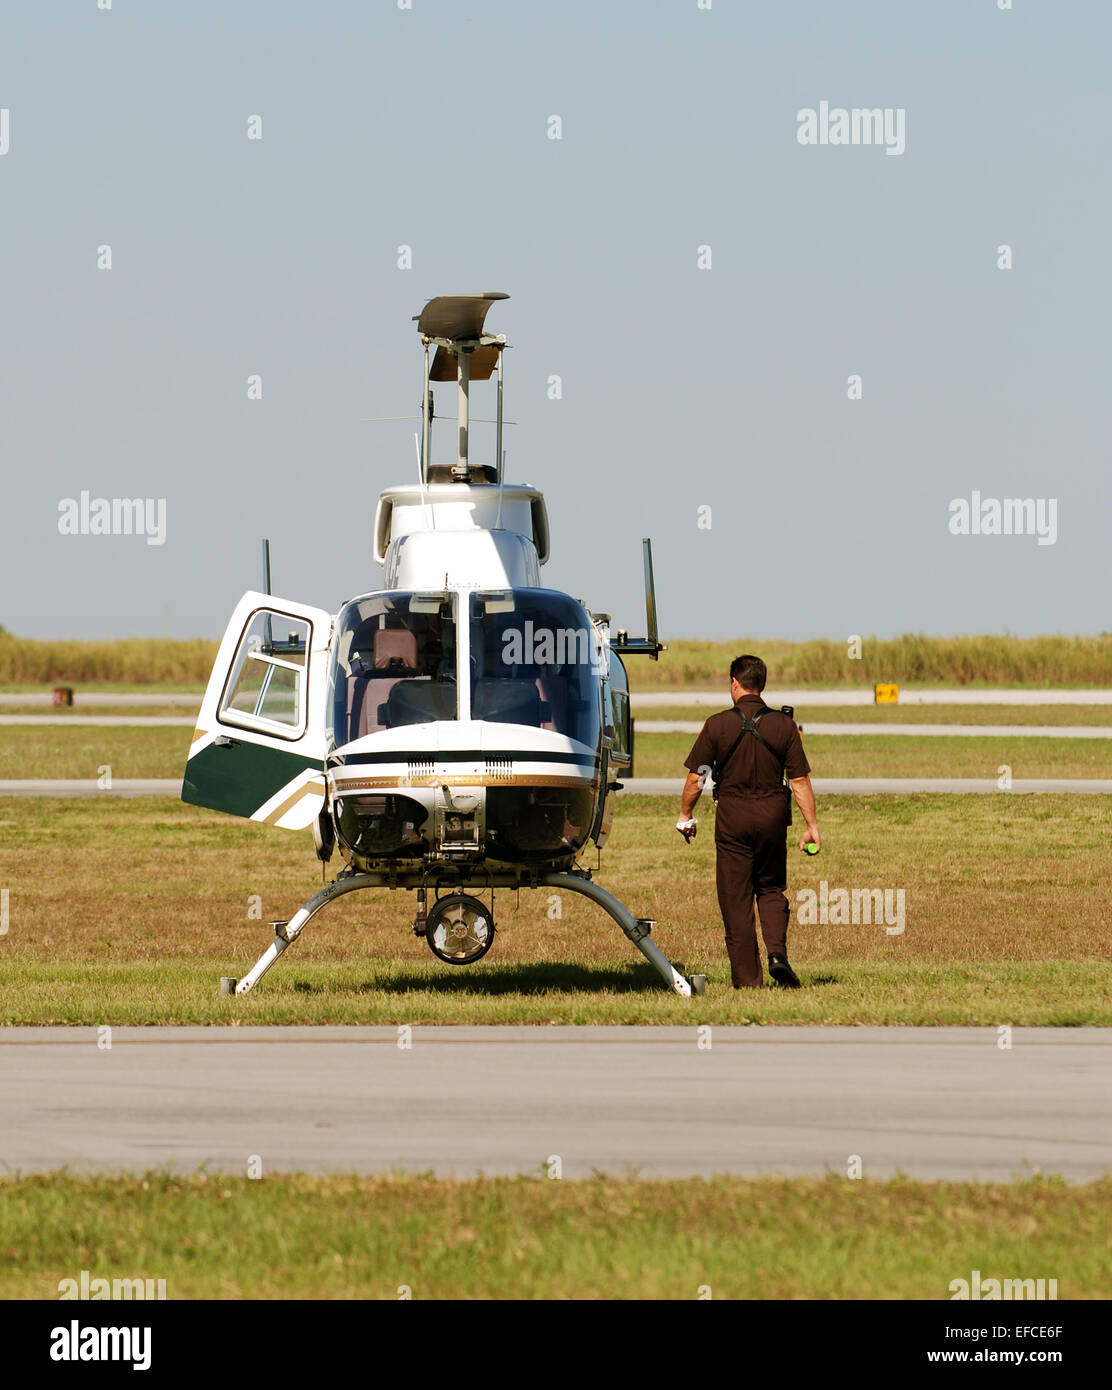 Police patrol by helicopter - Stock Image